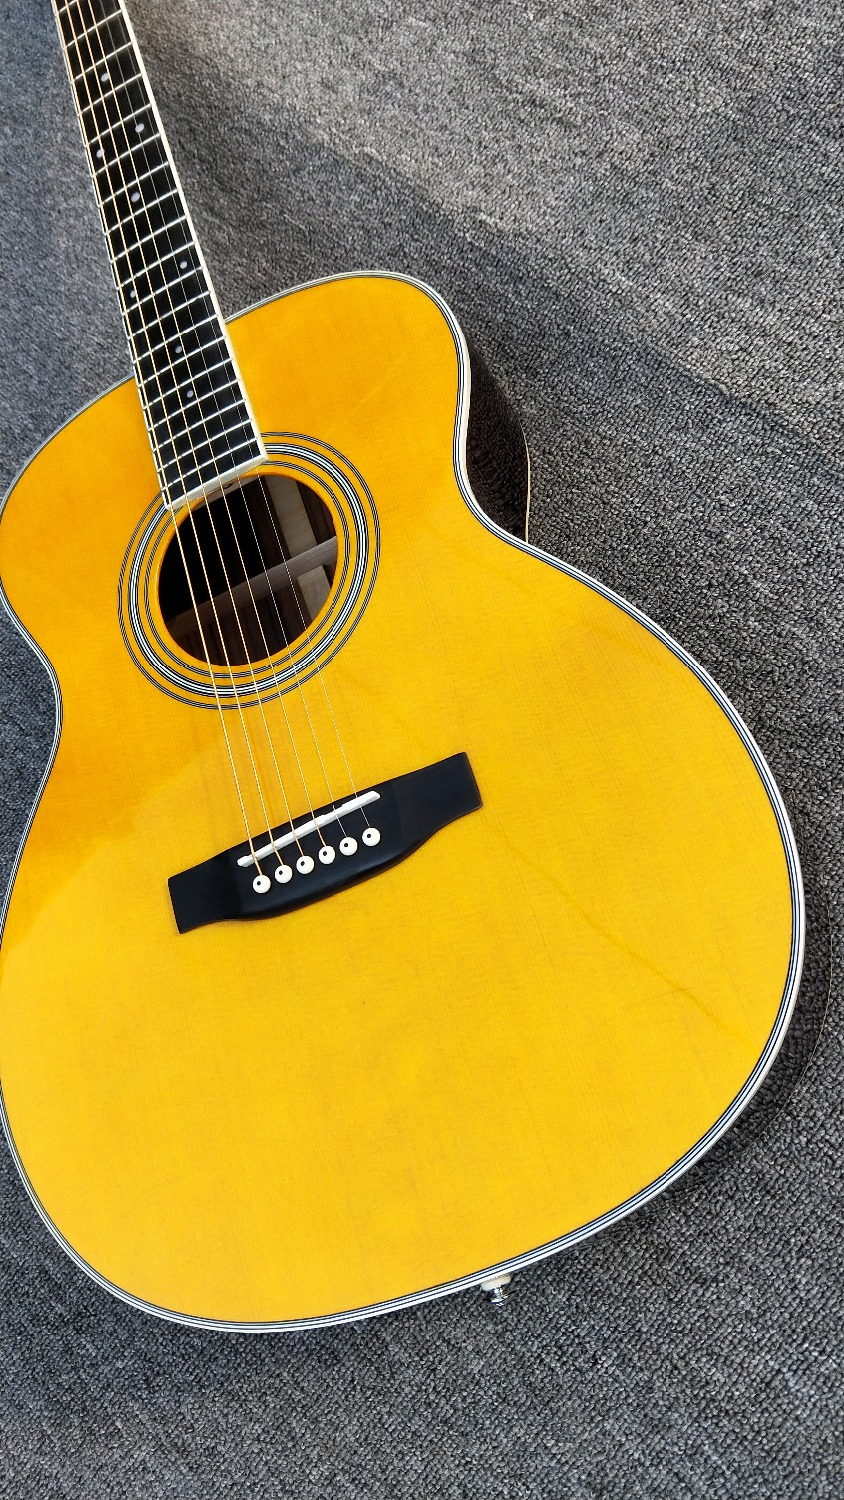 Chinese Factory Custom Yellow 28 Style Classical Acoustic Guitar, Solid Spruce Top, High Quality OM Body Acoustic Guitar musiclily 3ply pvc outline pickguard for fenderstrat st guitar custom